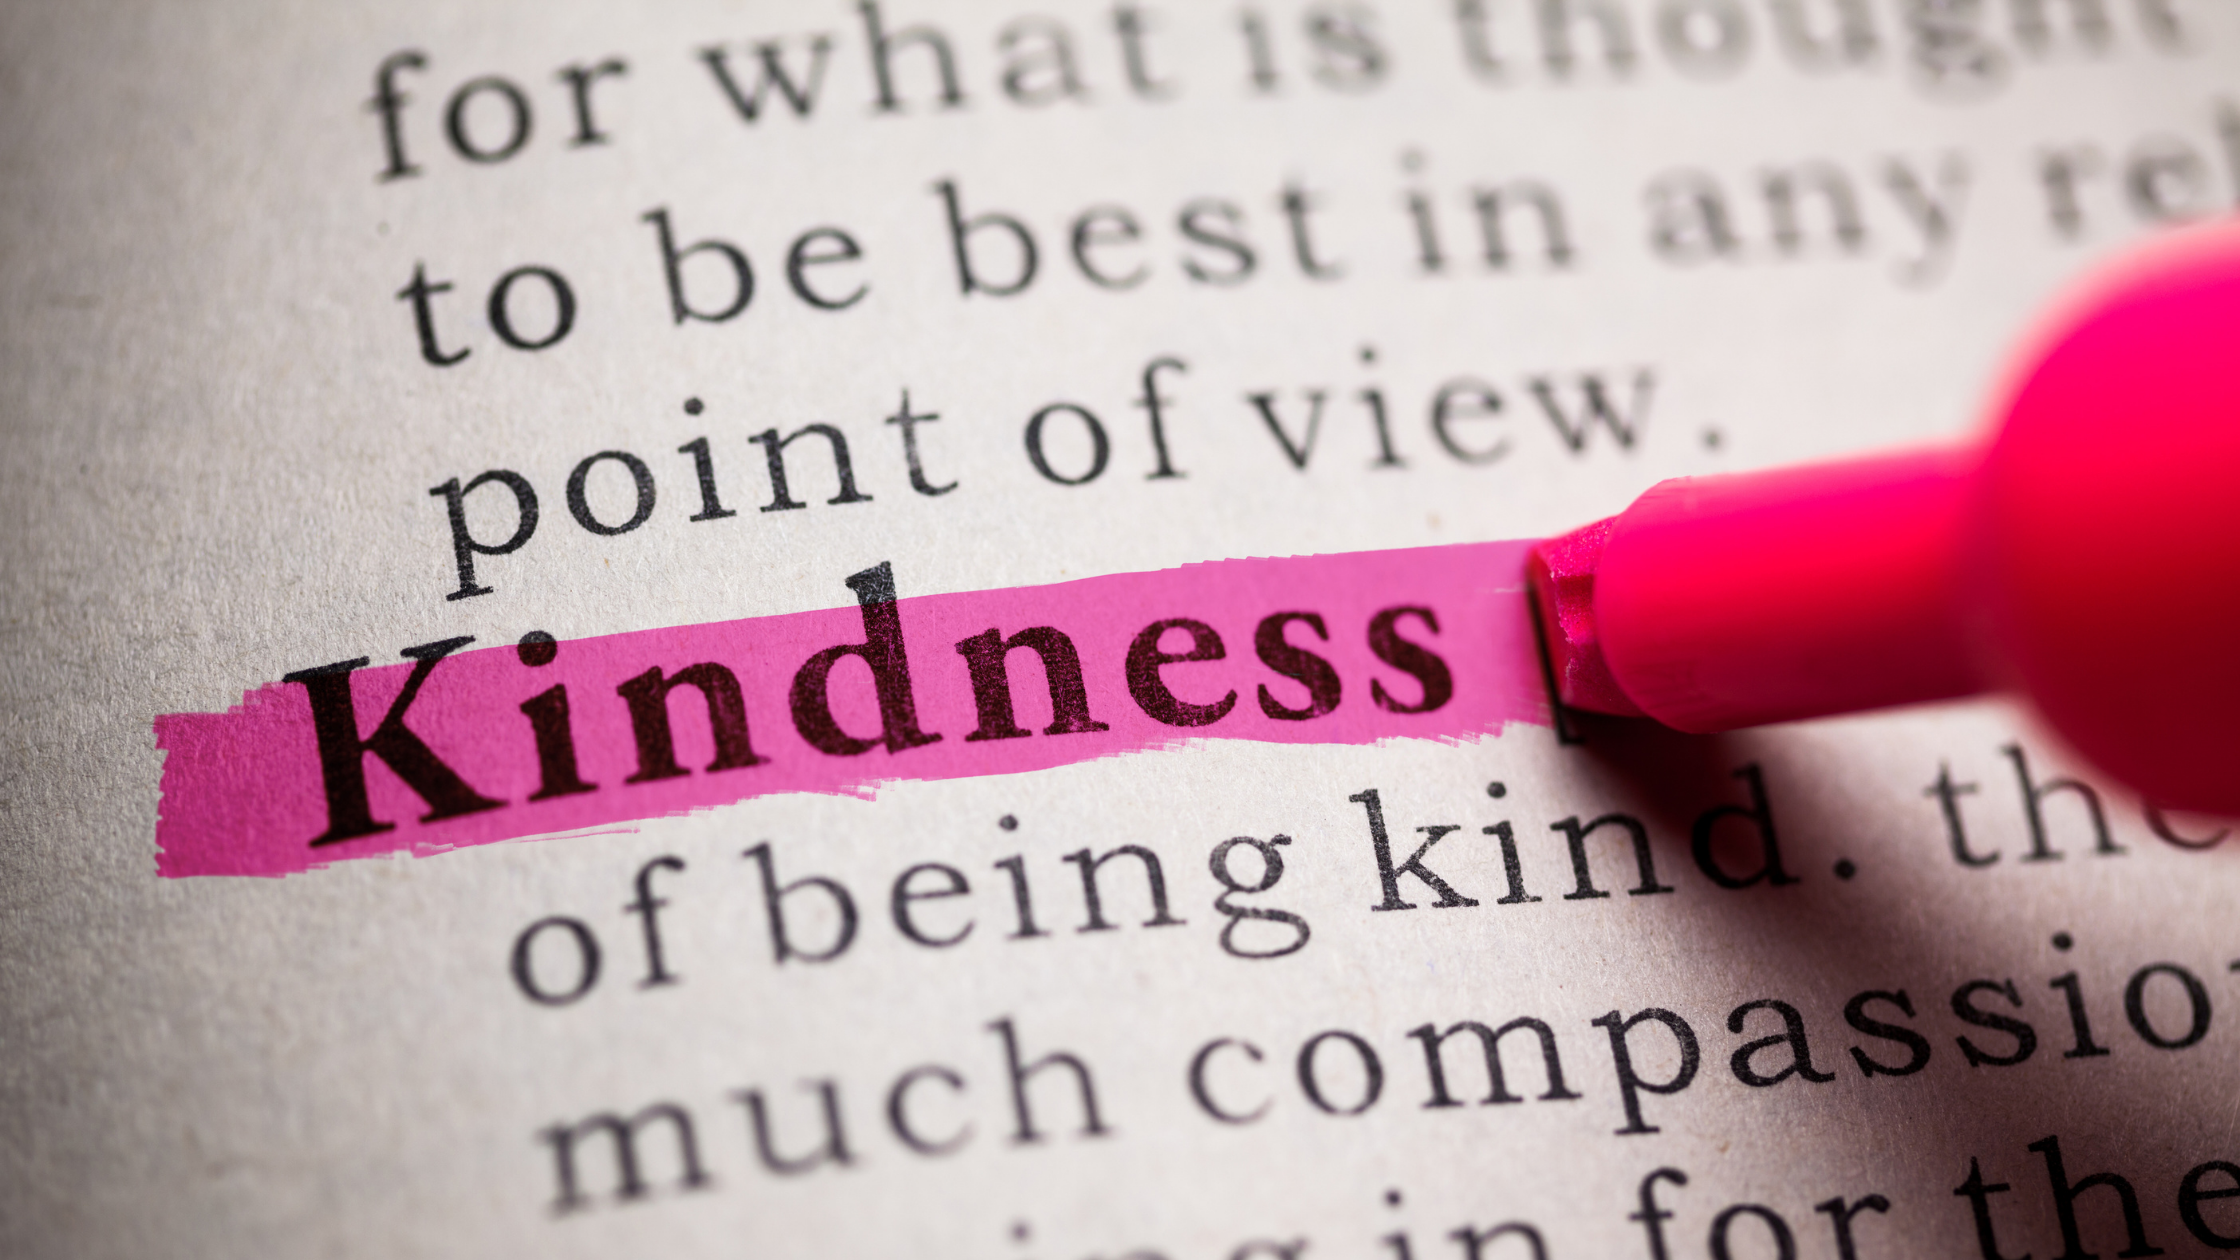 Editorial: Remember to be kind